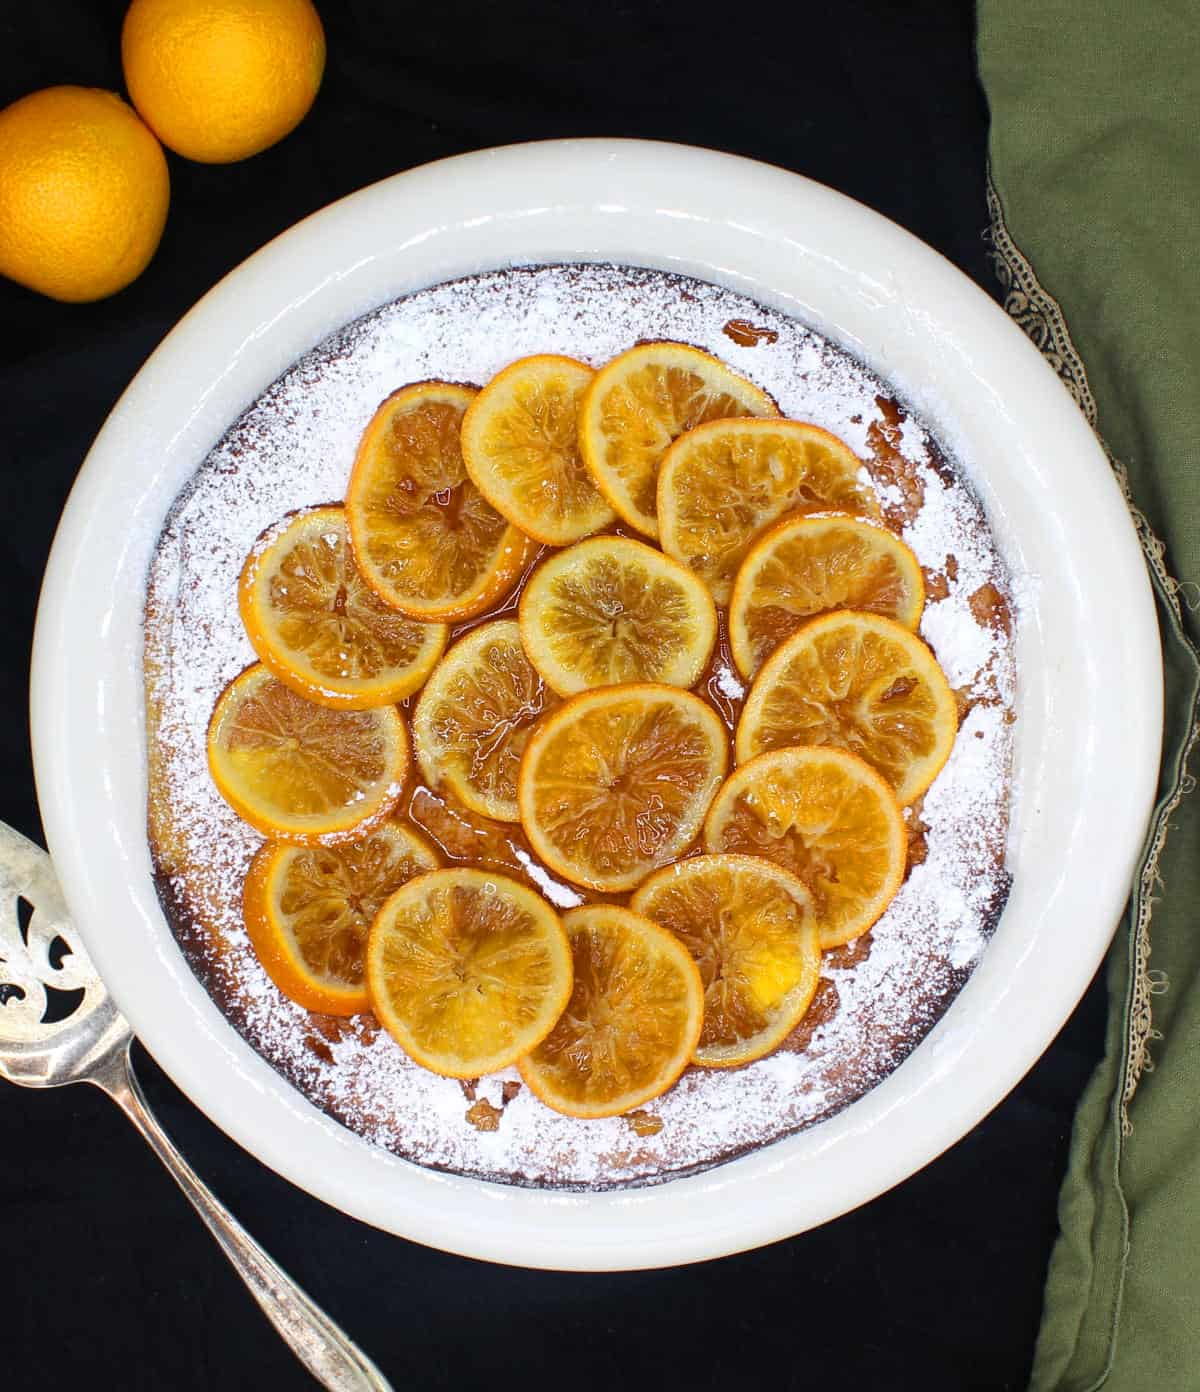 Overheat shot of a pretty glutenfree clementine cake on a white plate with mandarins next to it and a cake server.